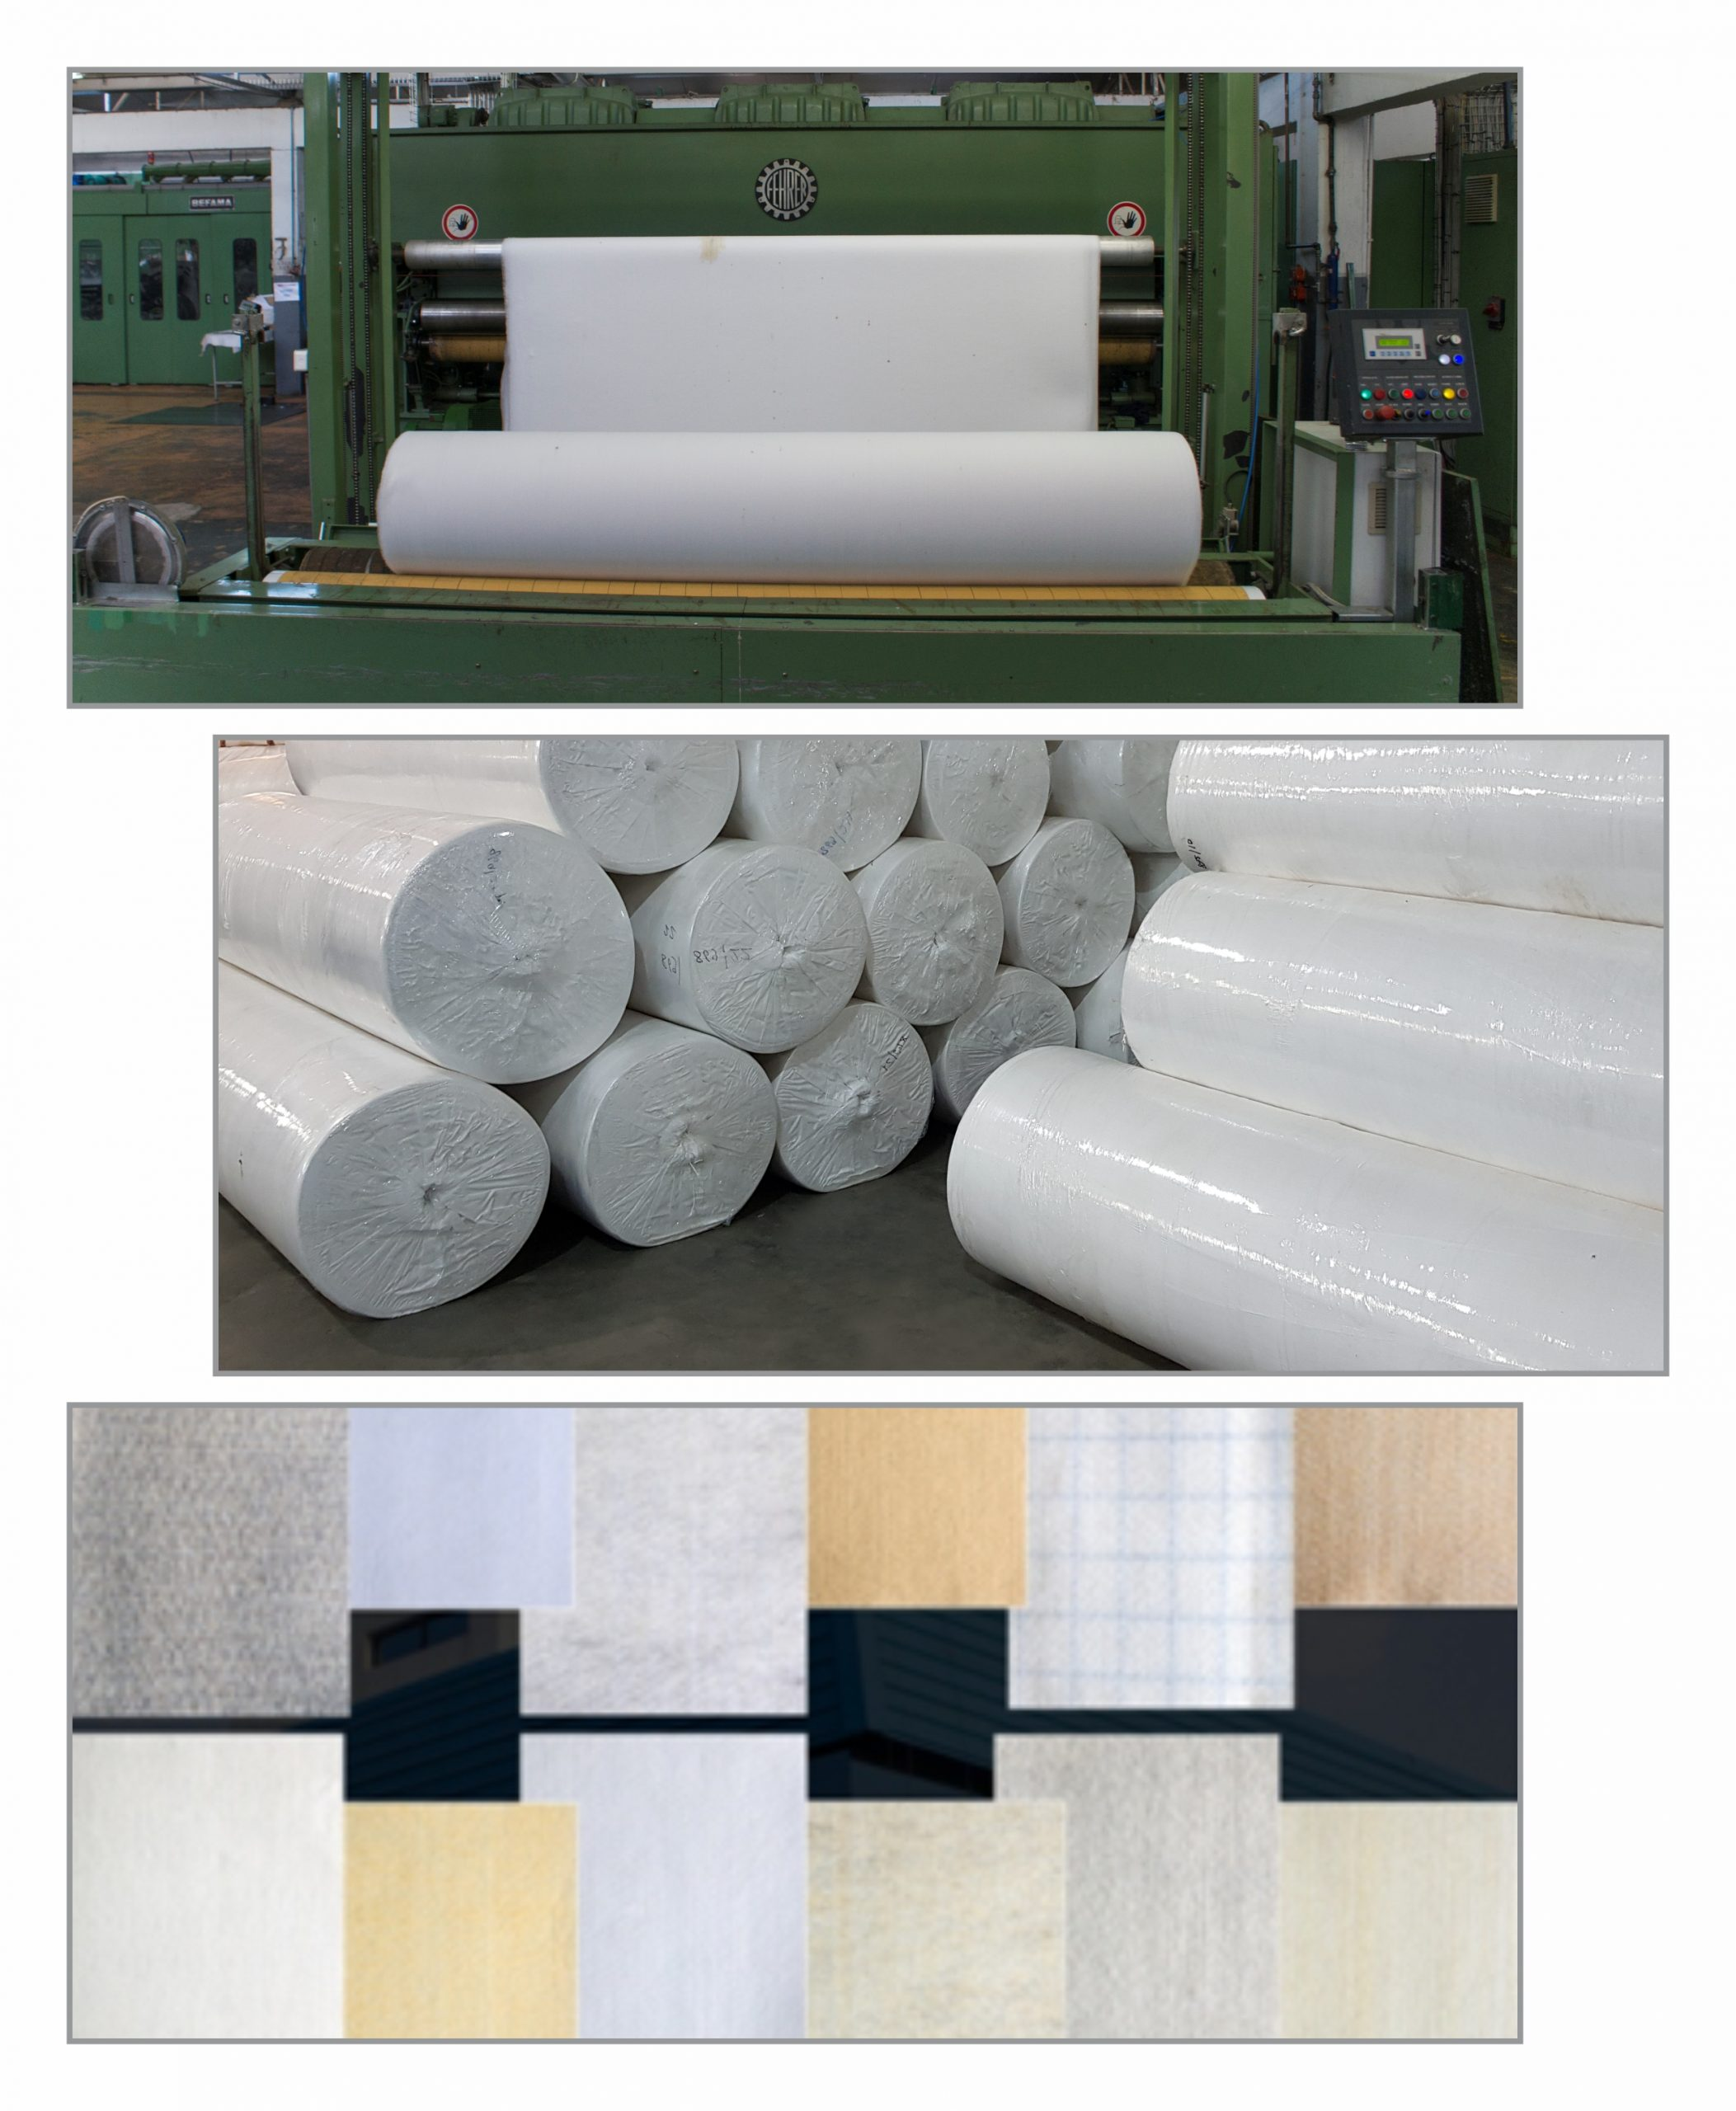 NON WOVEN TECHNICAL FELTS MANUFACTURING, Leading Industrial Filtration Solution Provider